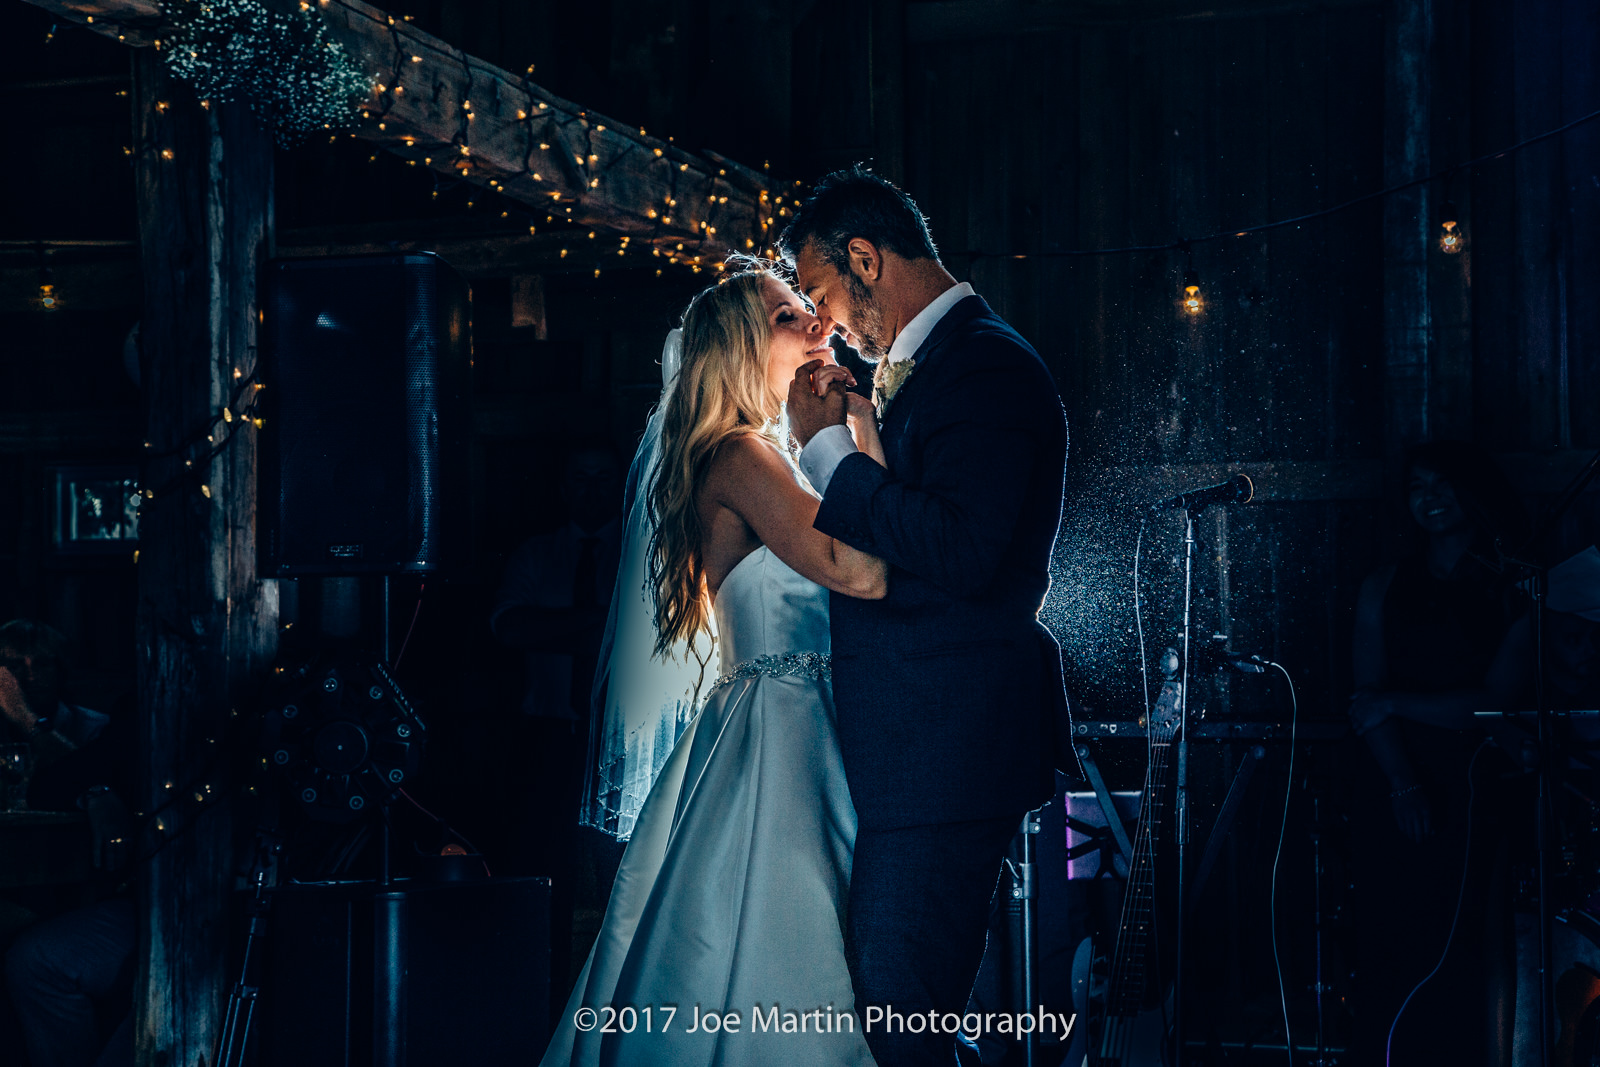 Here You Will Find Information About Wedding Photography And New Hampshire Venues